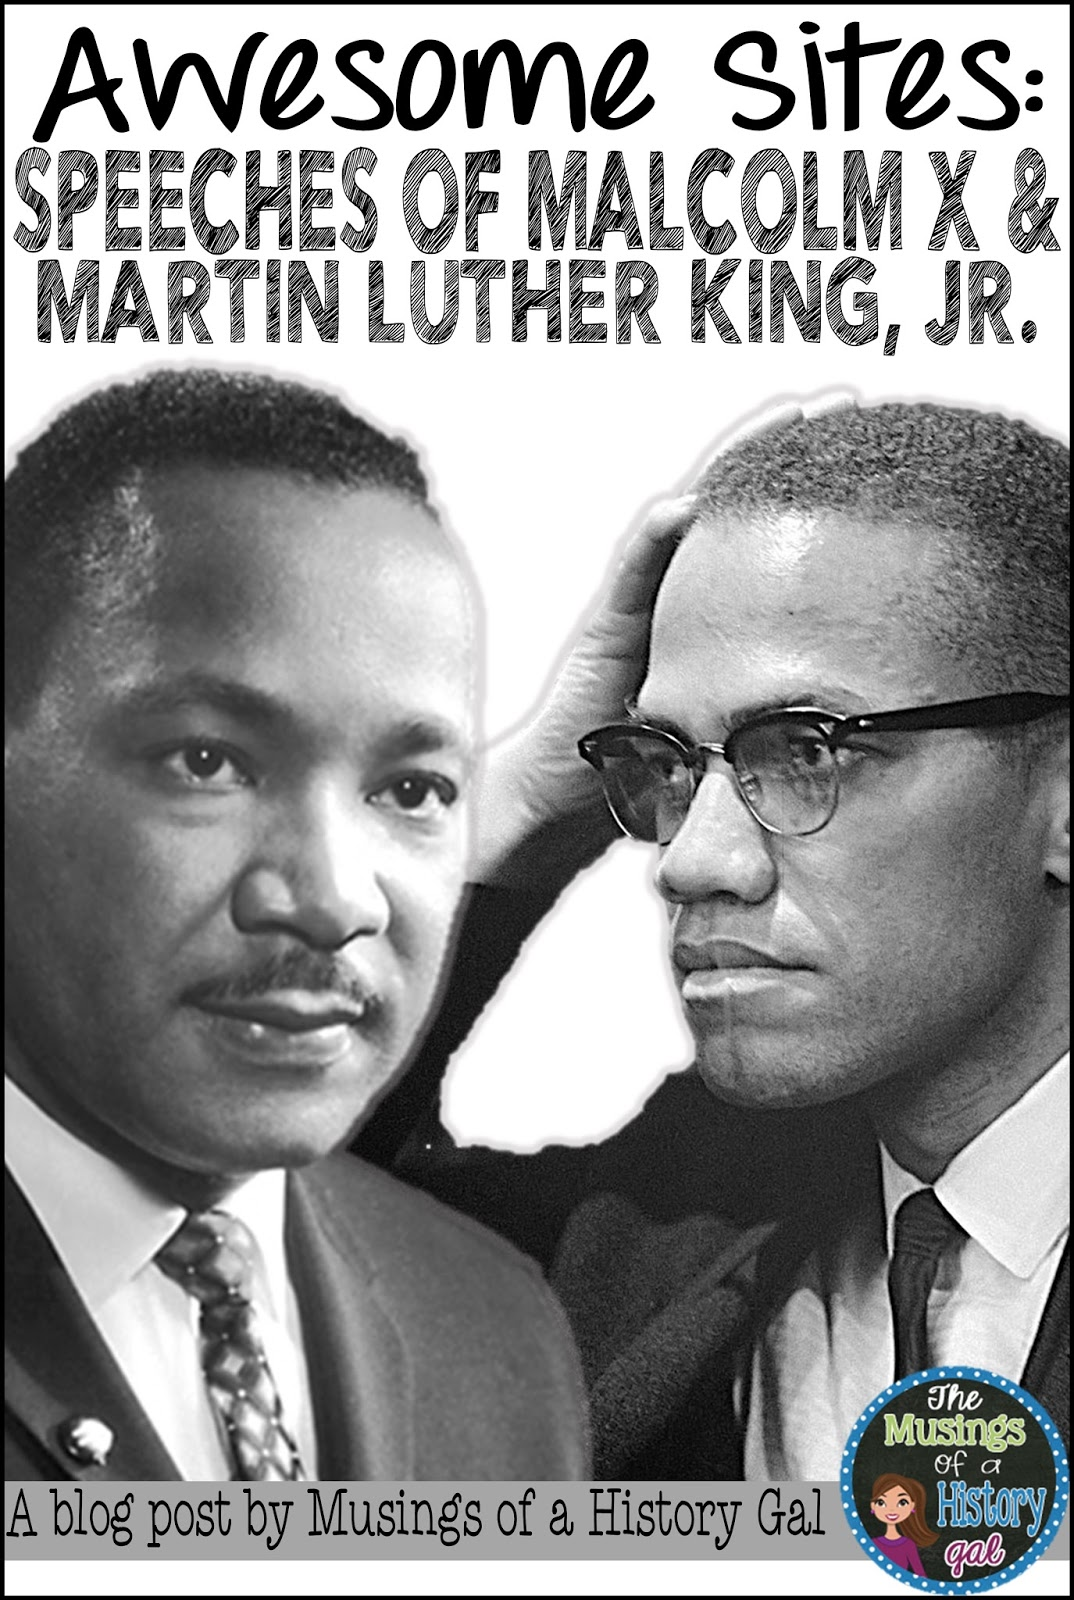 an analysis of malcolm x and martin luther king jr This is my rhetorical analysis of malcolm x's speech and the other was malcom x while martin luther king jr advocated for peaceful revolution.